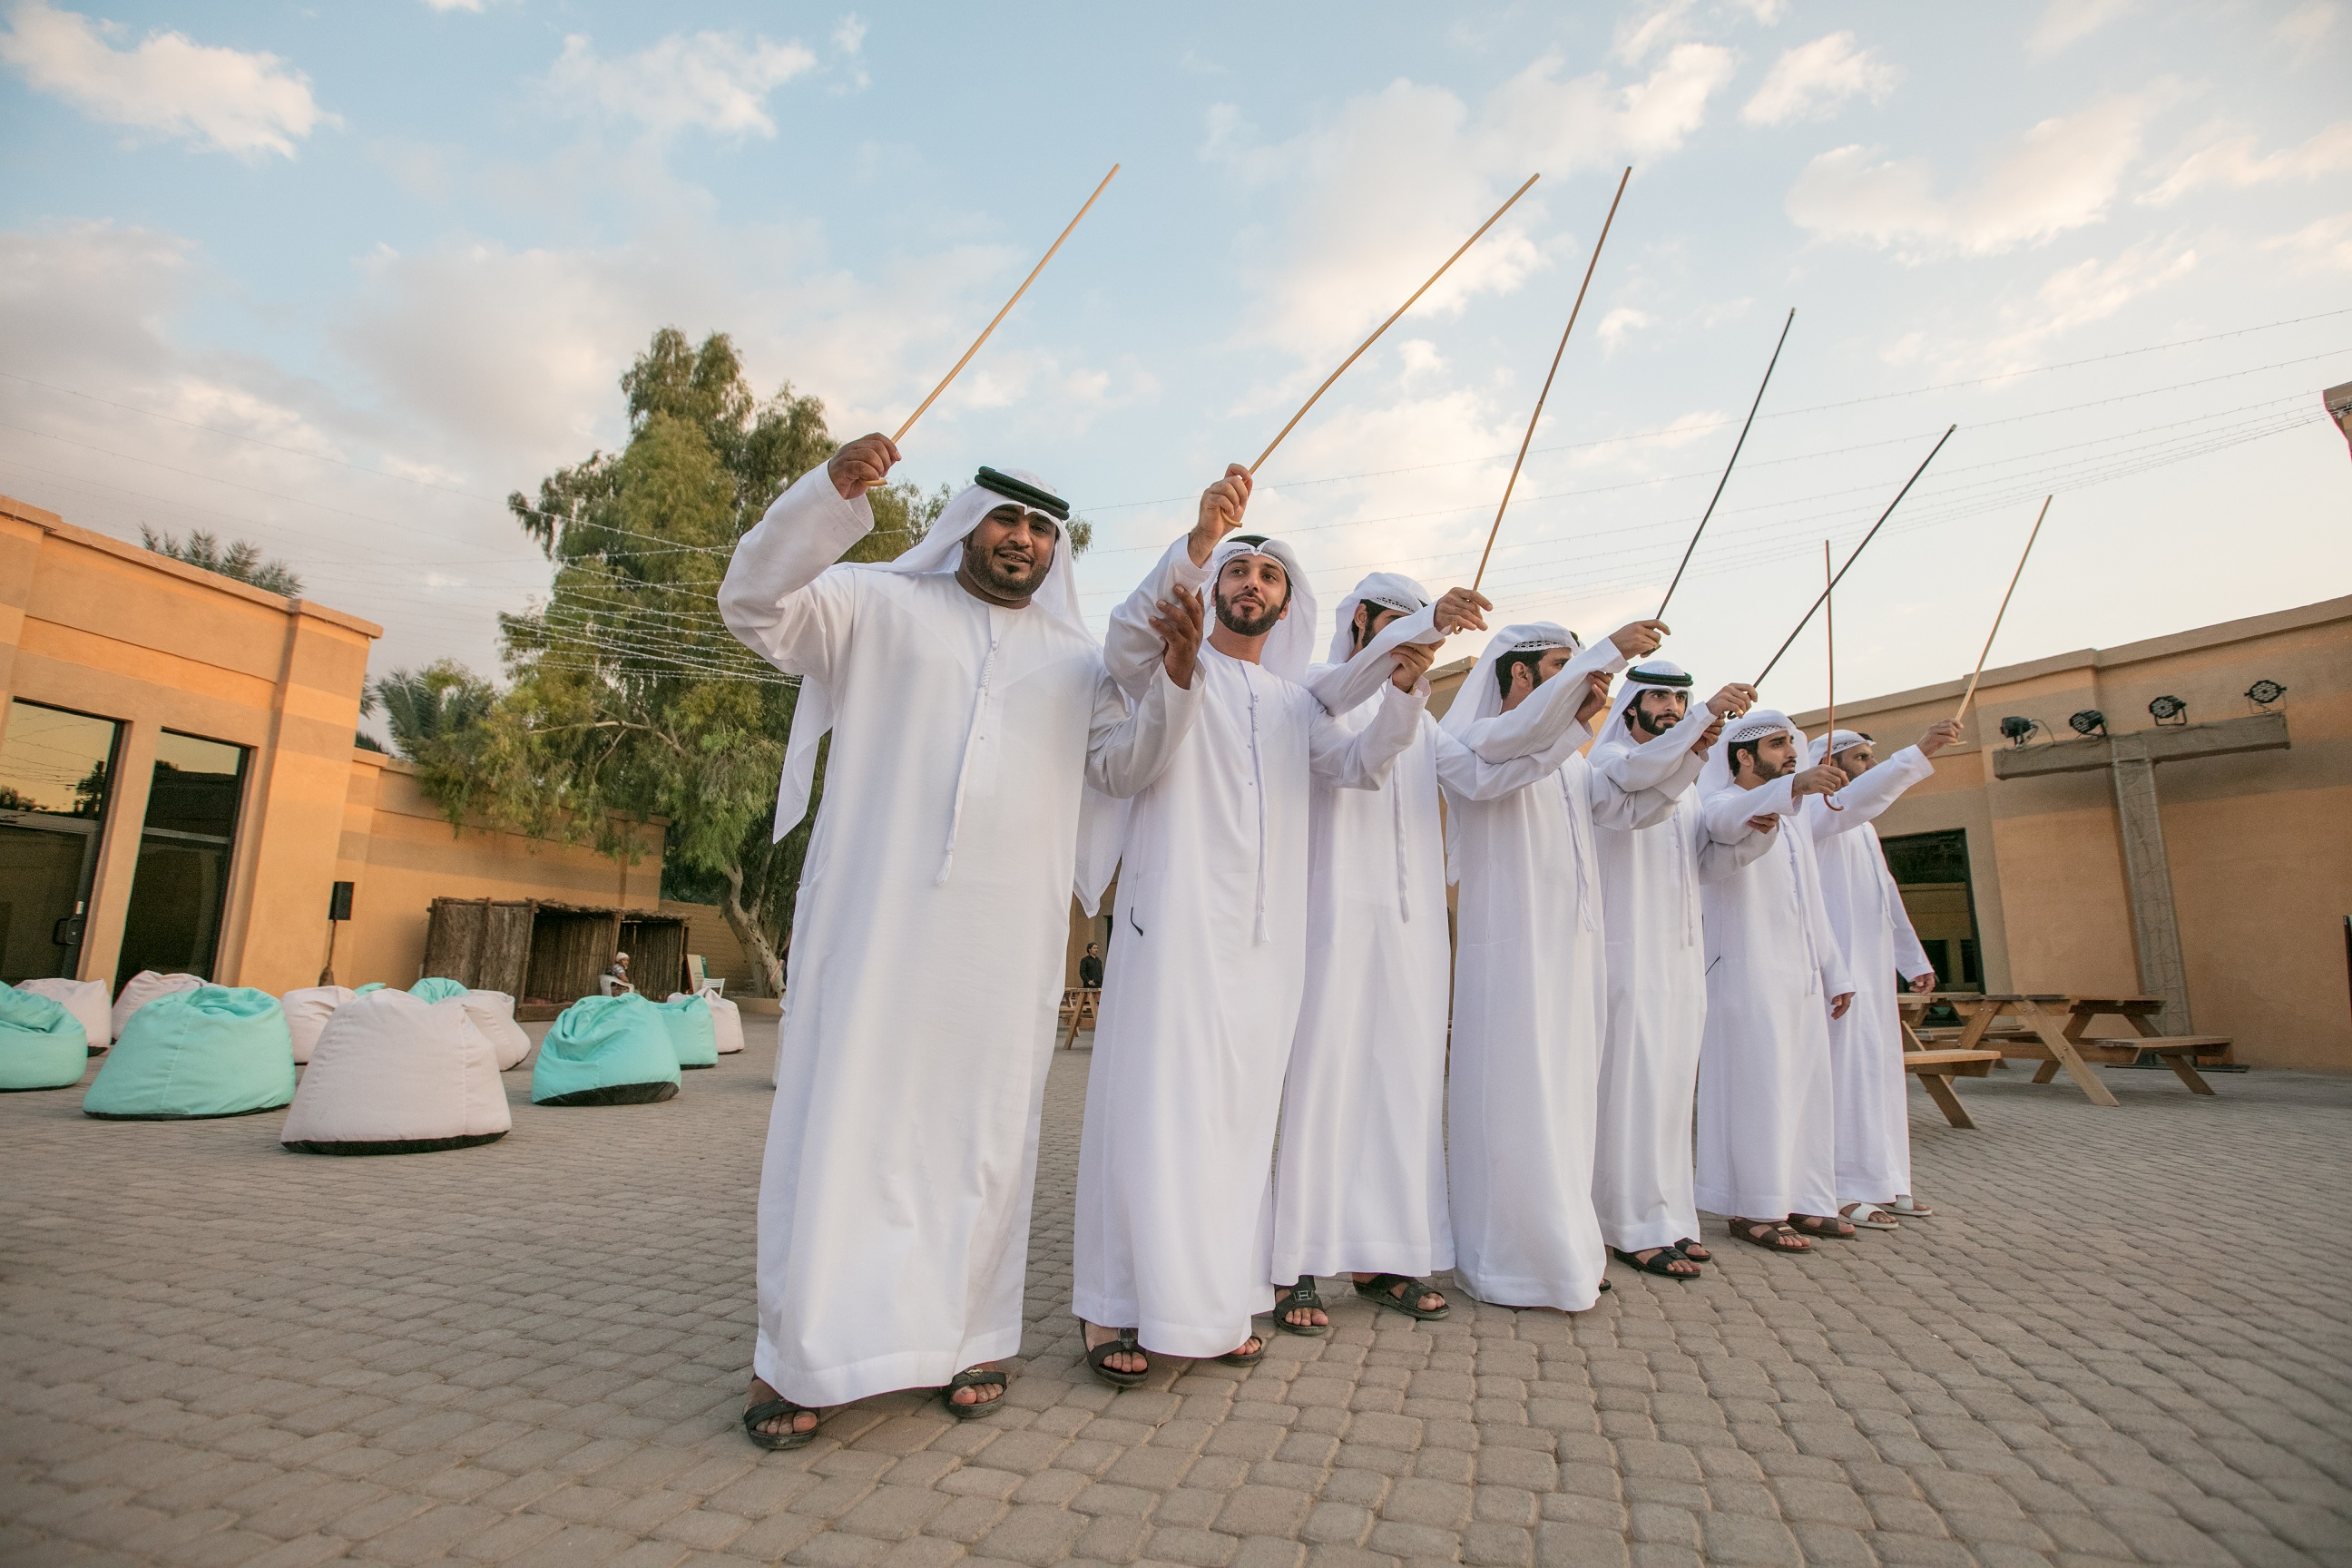 weekends at oasis workshops brings arts and crafts to al ain1